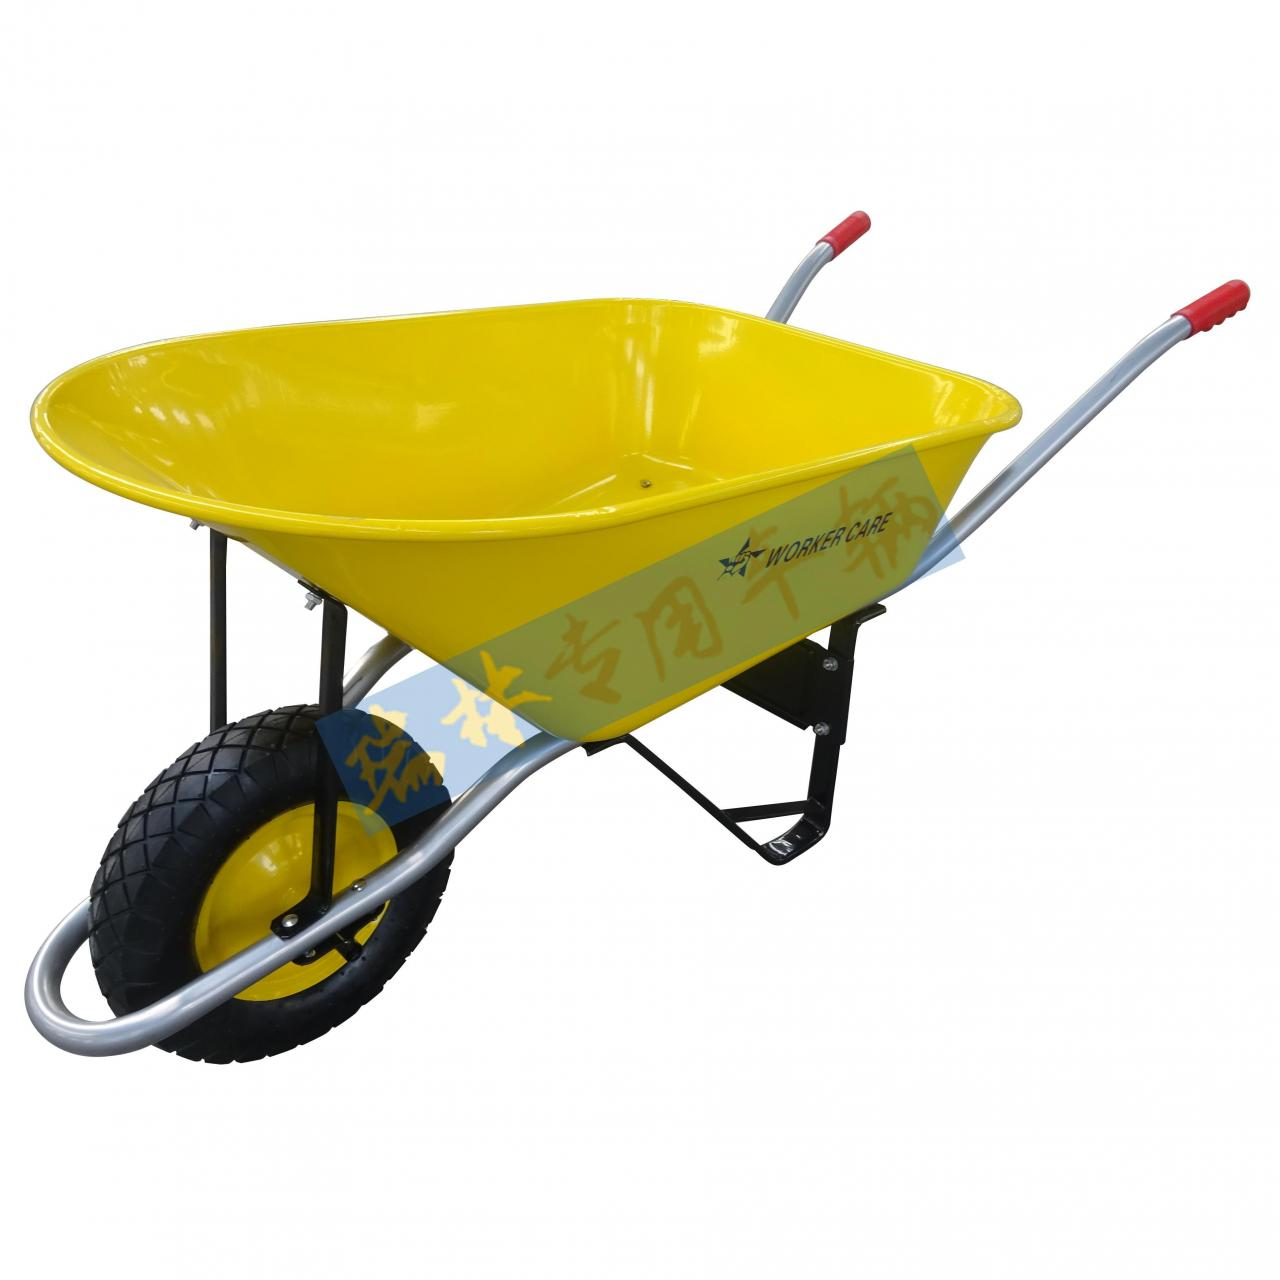 wheelbarrow wb7215 Manufactures